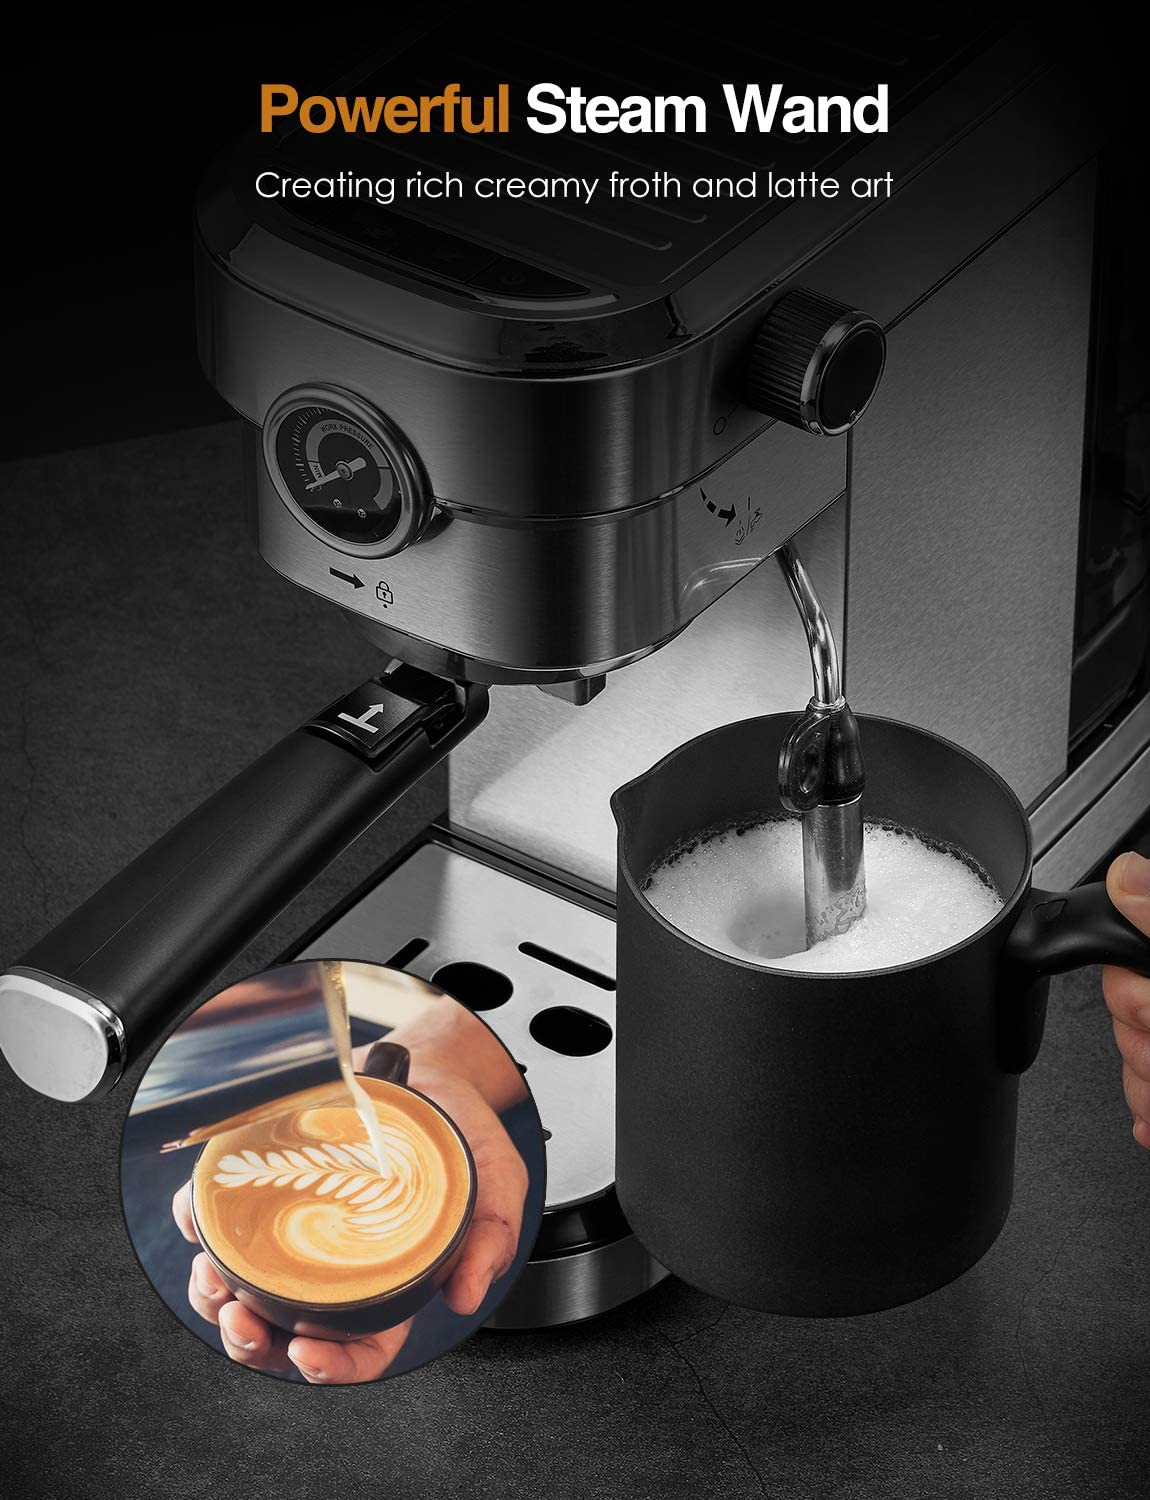 Cappuccino and Latte Brewsly 15 Bar Espresso Machine Professional Coffee Machine for Espresso Stainless Steel Compact Espresso Maker with Milk Frother Wand